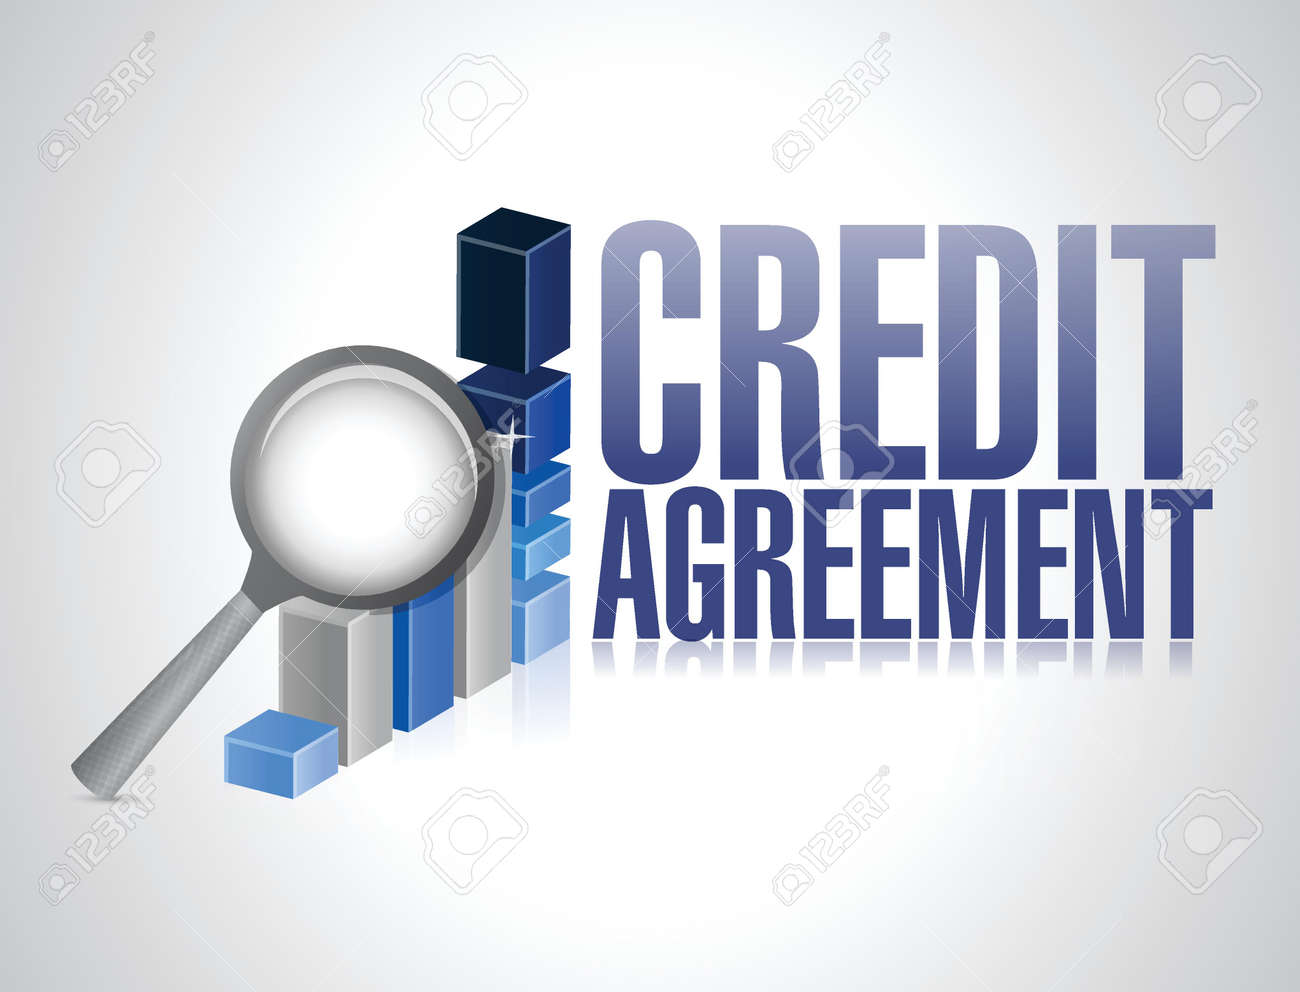 credit agreement business sign illustration design over a white background Stock Vector - 22753140